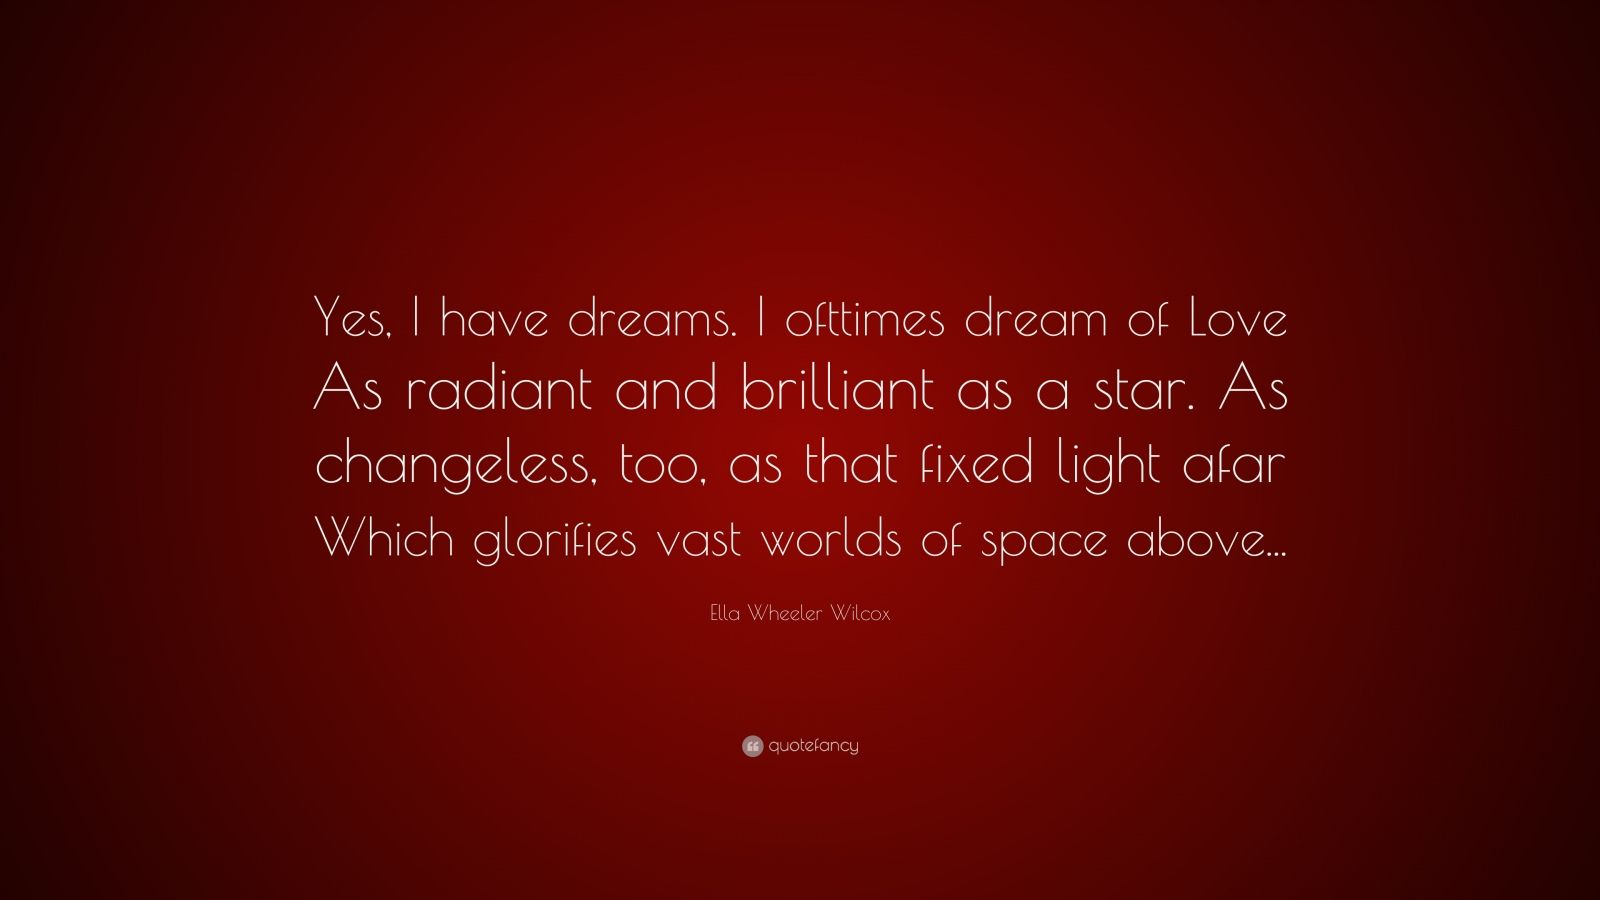 """Ella Wheeler Wilcox Quote: """"Yes, I have dreams. I ofttimes dream of Love As radiant and brilliant as a star. As changeless, too, as that fixed light afar Which glorifies vast worlds of space above..."""""""